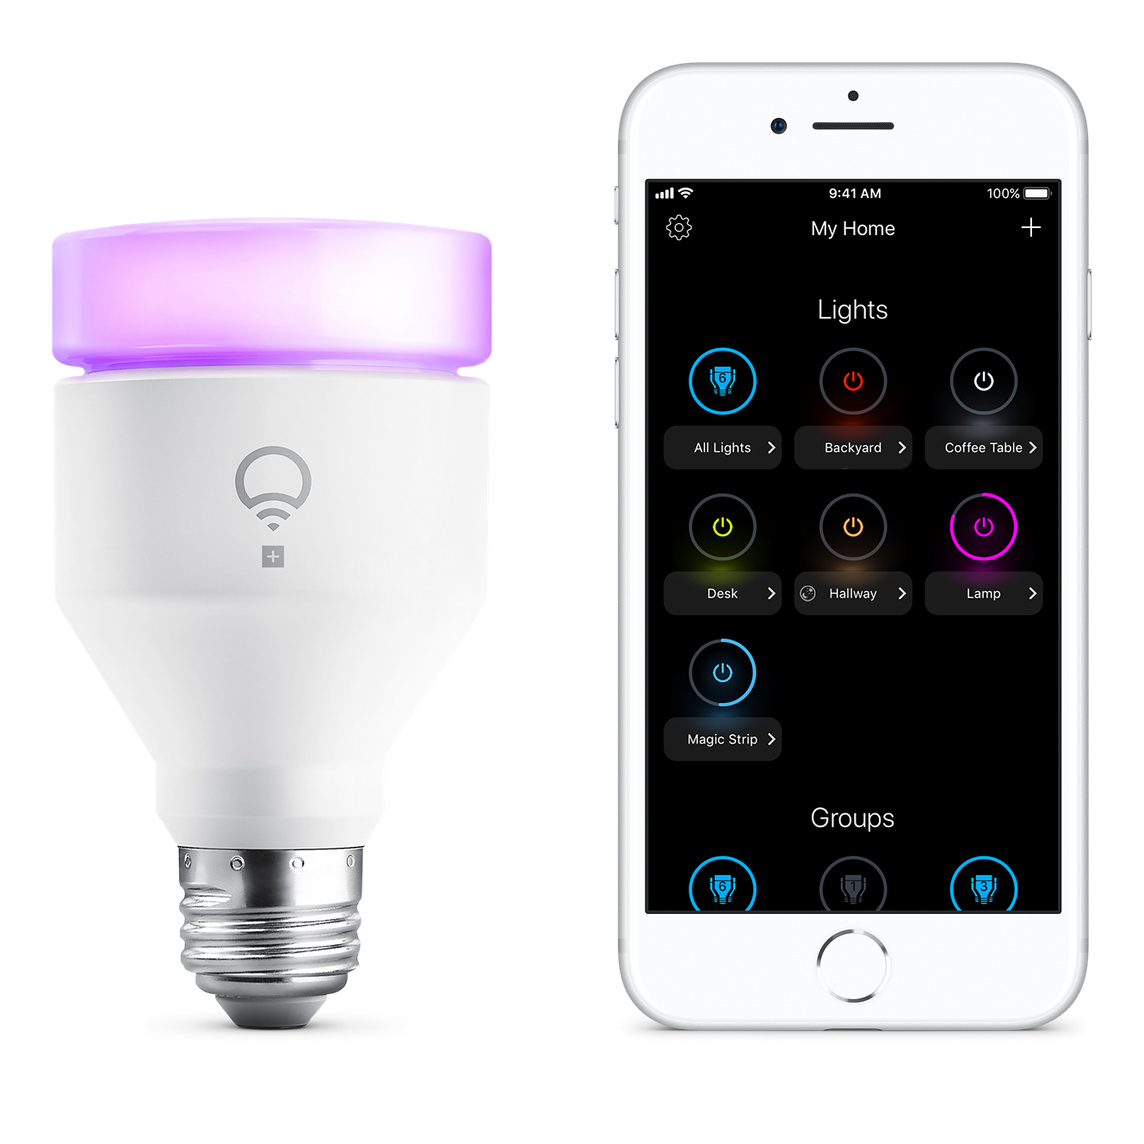 LIFX + Infrared Multicolor A19 E26 Dimmable Wi-Fi Smart LED Light Bulb